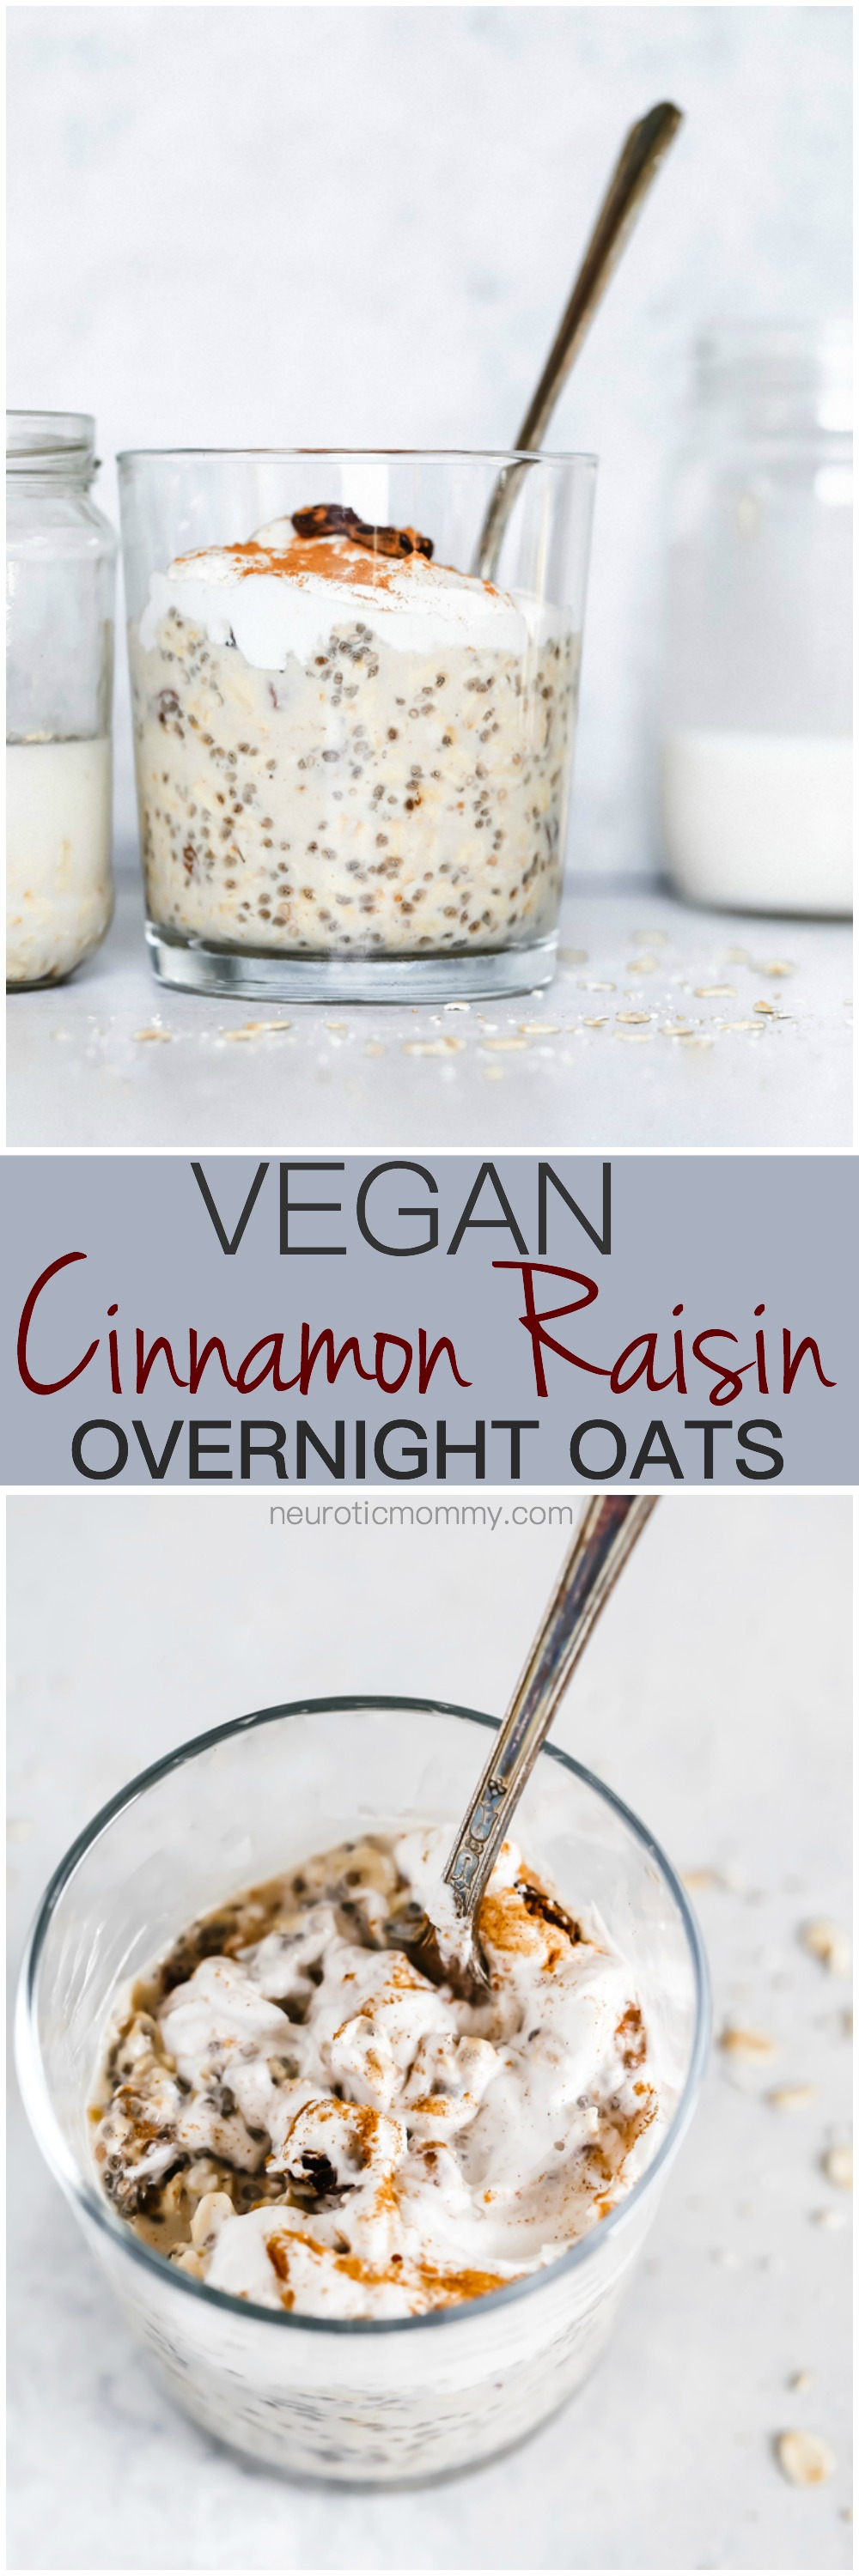 Cinnamon Raisin Overnight Oats - Creamy oats with warming hints of cinnamon and sweet raisins throughout. Topped with coconut yogurt for added deliciousness. Perfect for on the go or meal prepping. NeuroticMommy.com #vegan #overnightoats